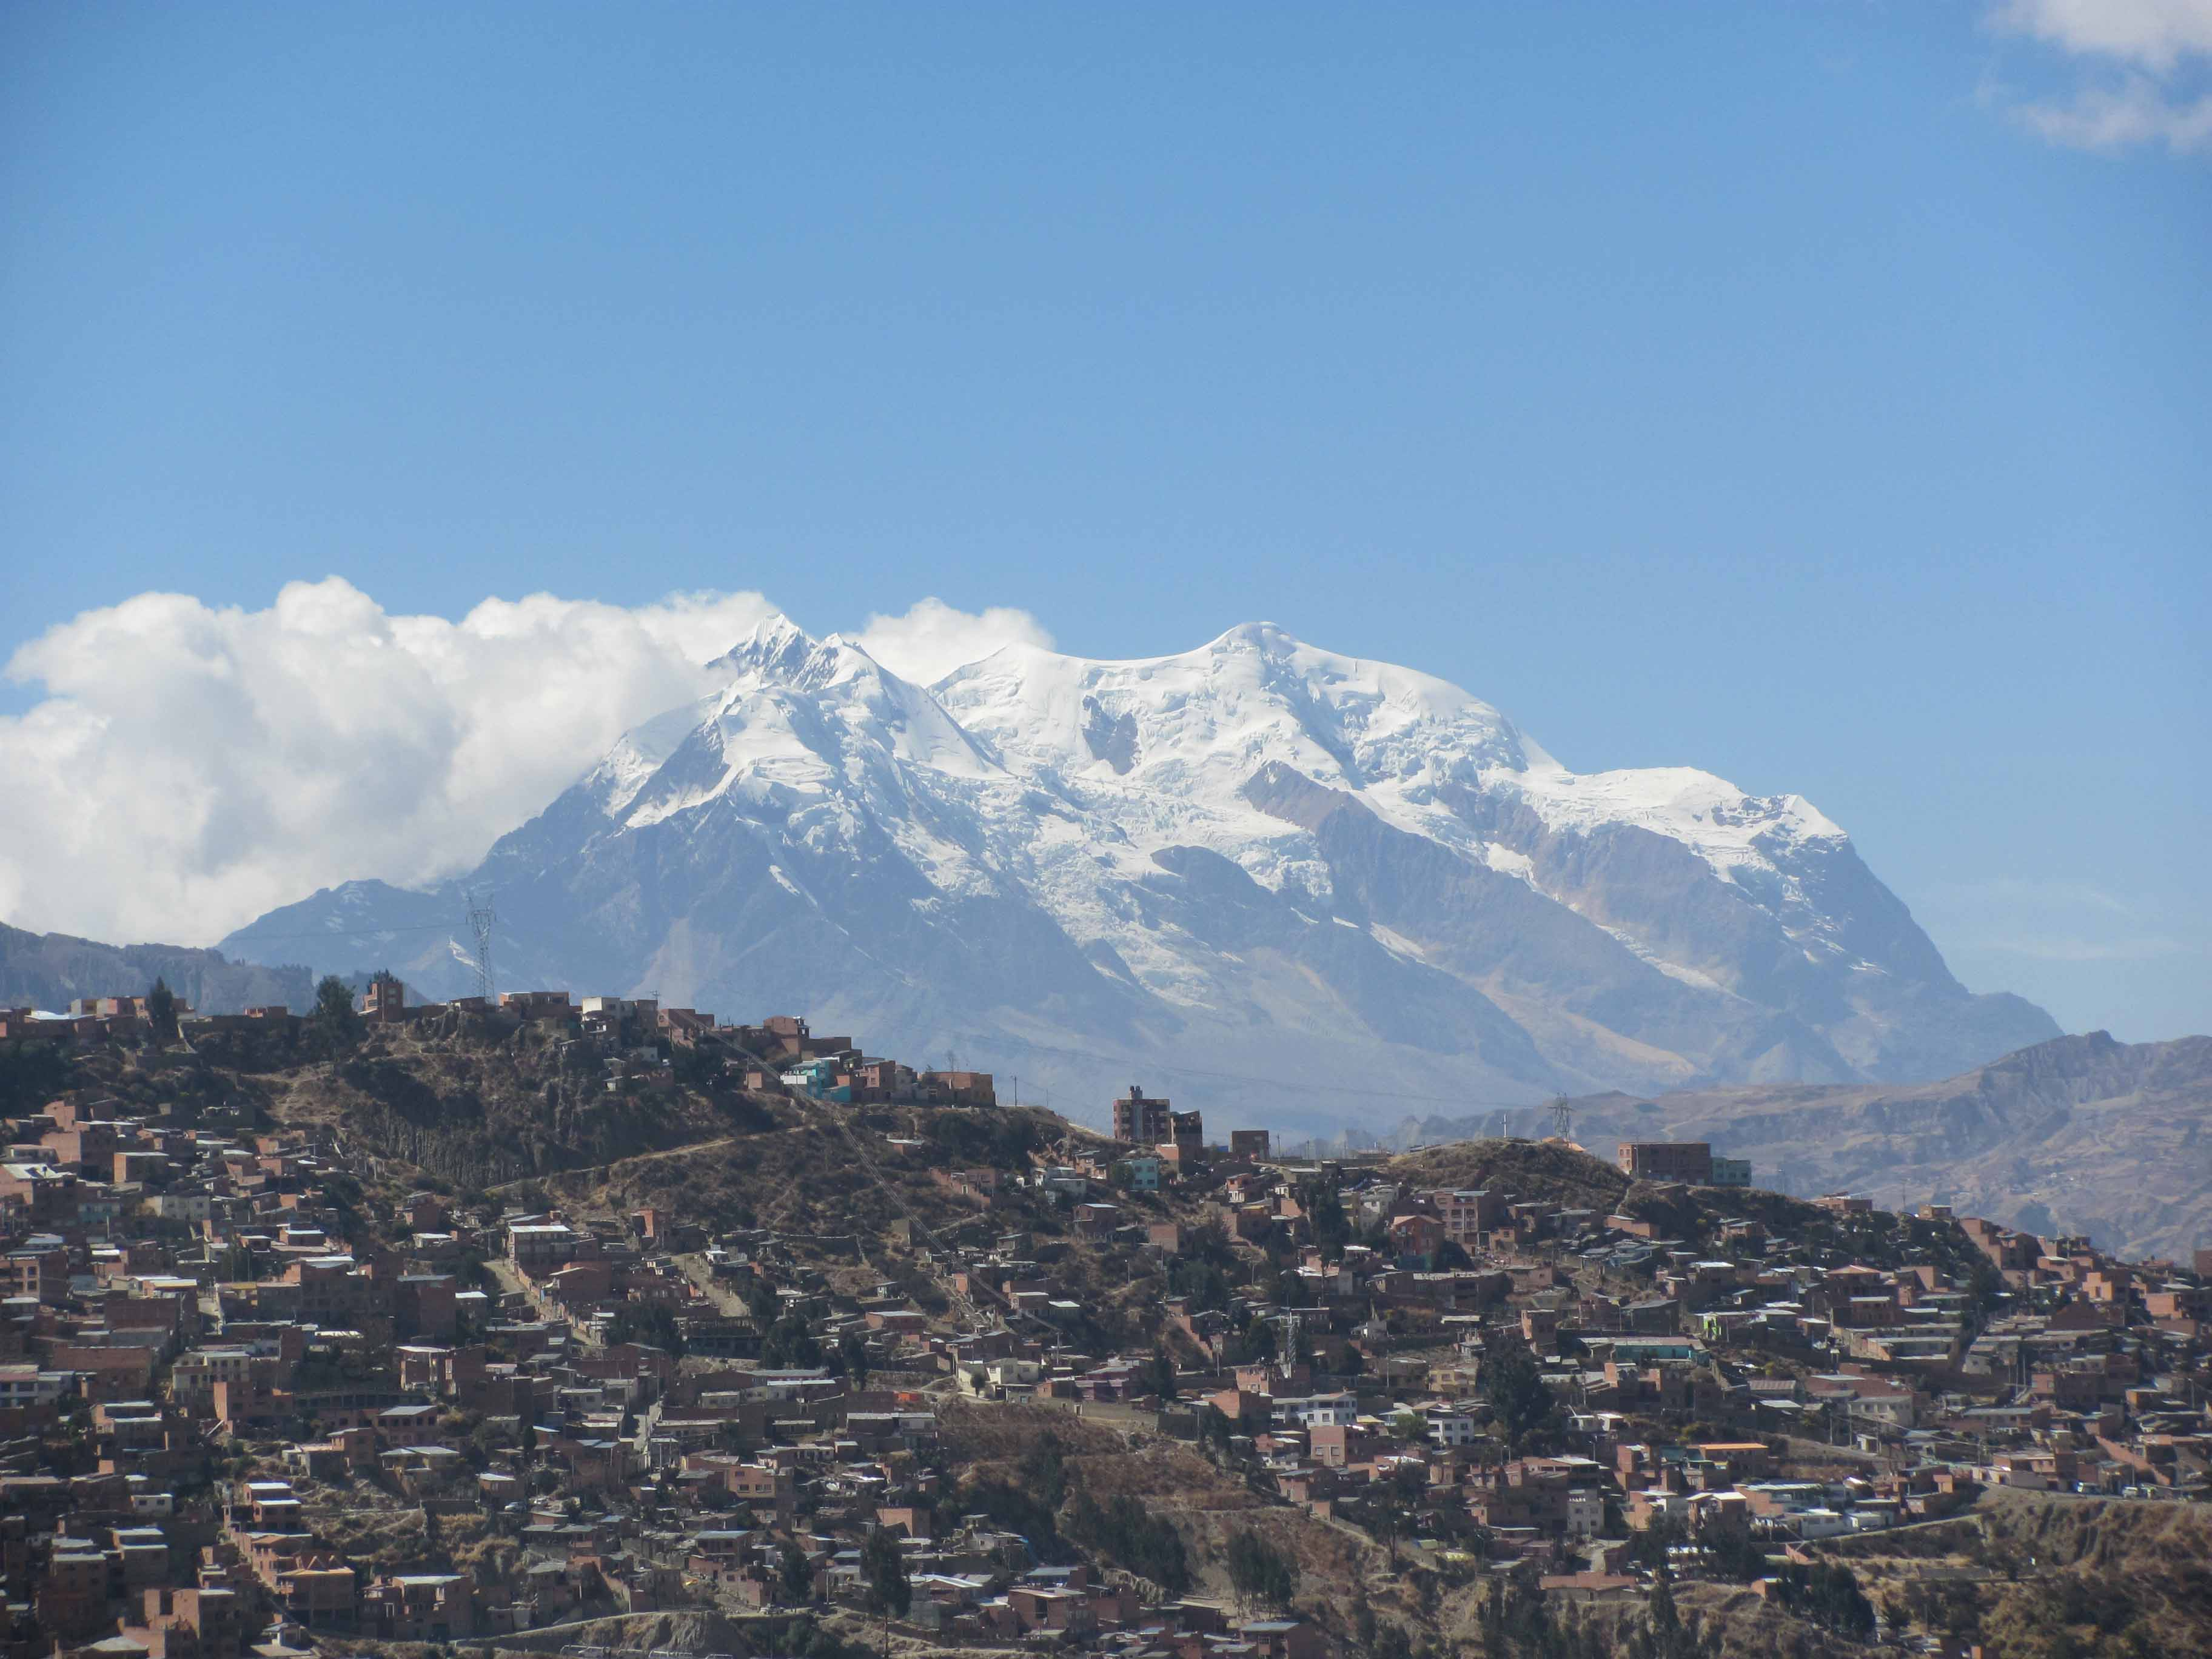 Illimani is just plain big!  Over 21,000 feet high, the mountain towers 9000 feet above La Paz, about 25 miles away.  (Greg Vernovage)